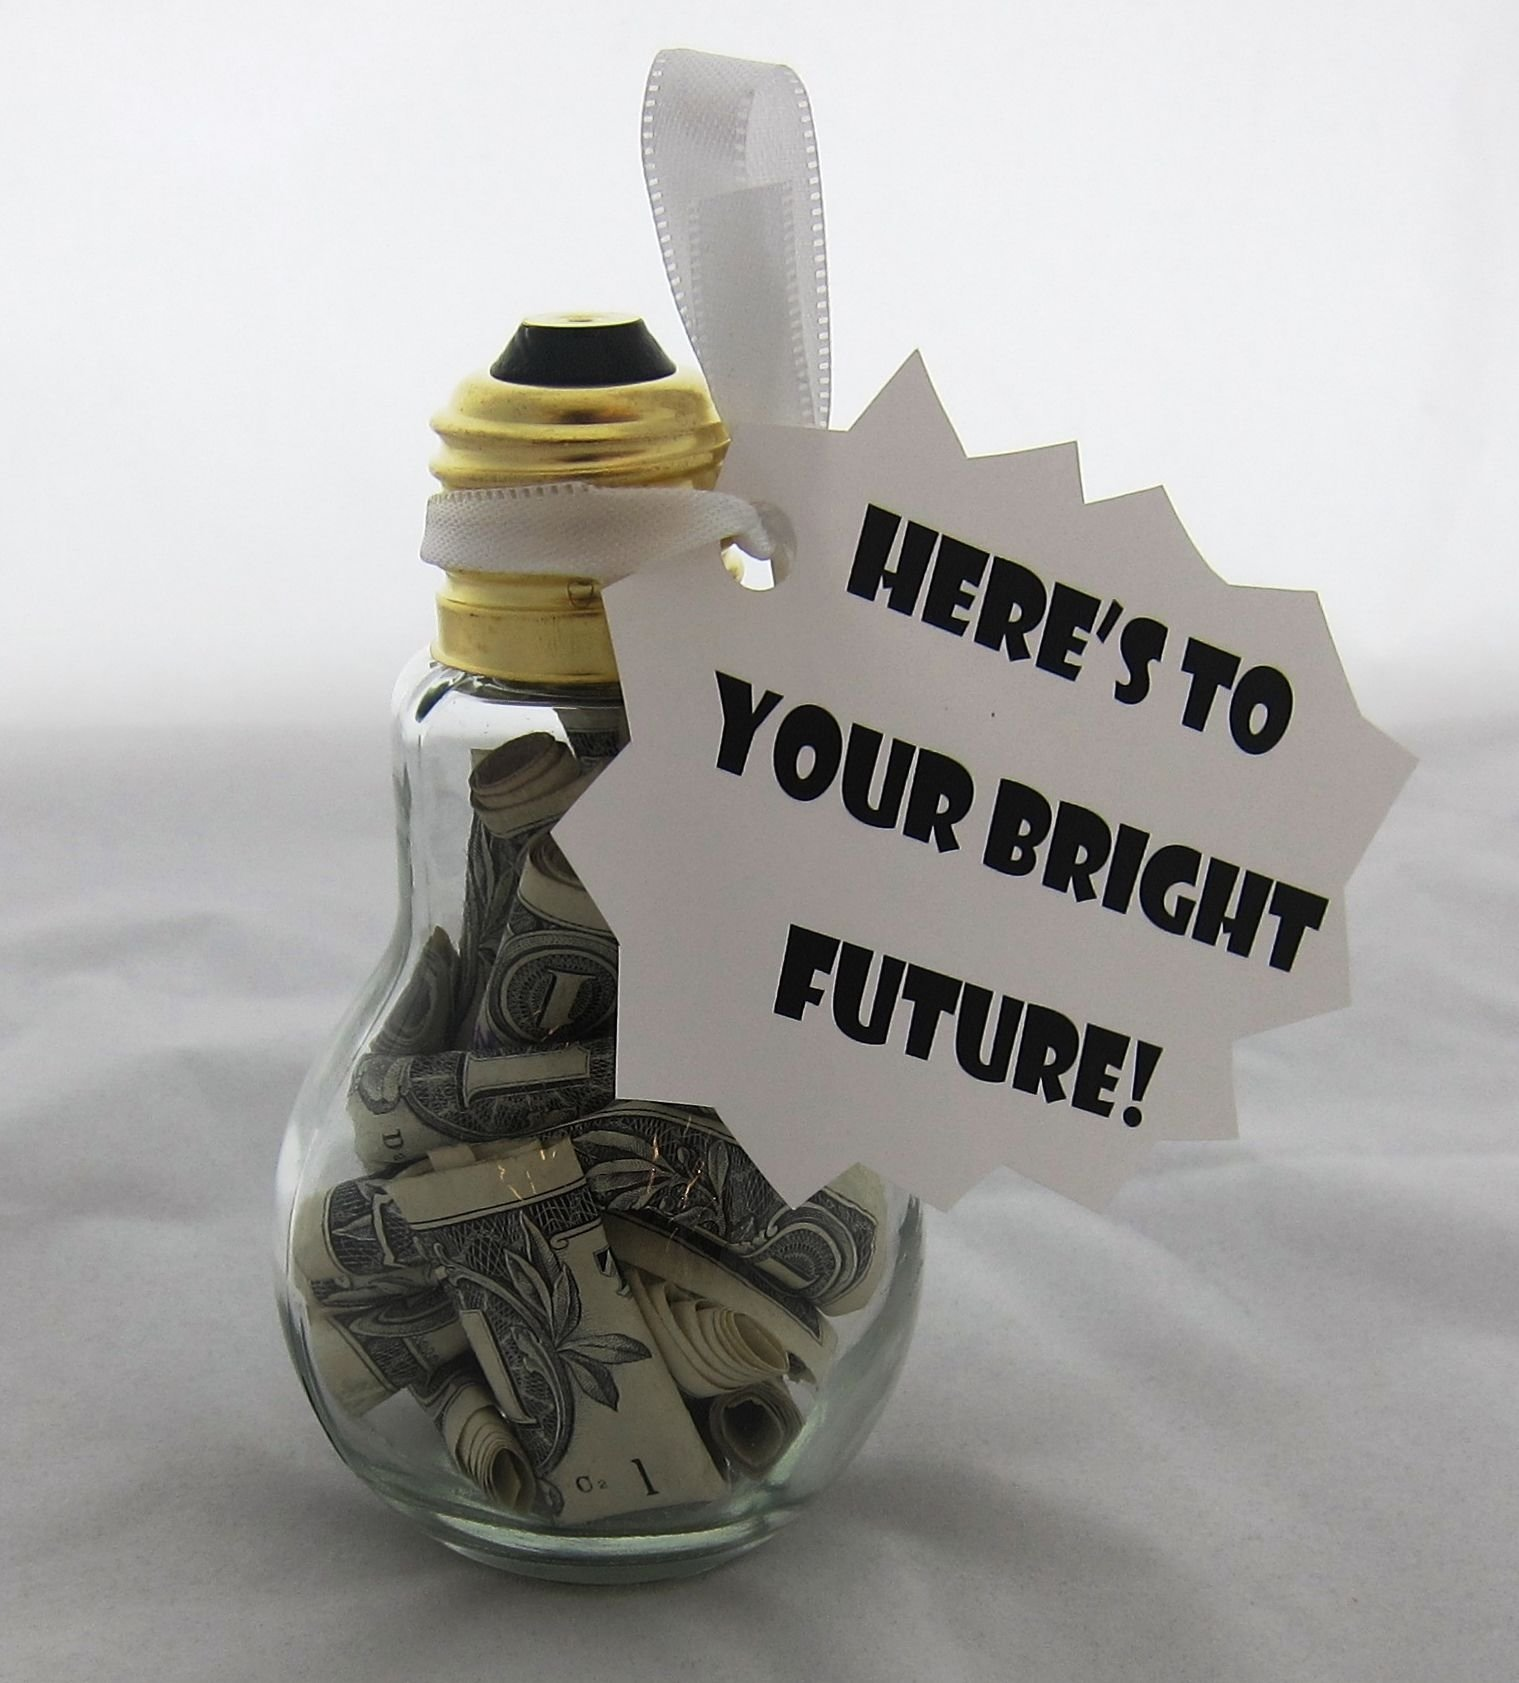 10 Attractive Graduation Gifts Ideas For Her how punny are these 5 crafty ways to give cash gifts grad gifts 2020